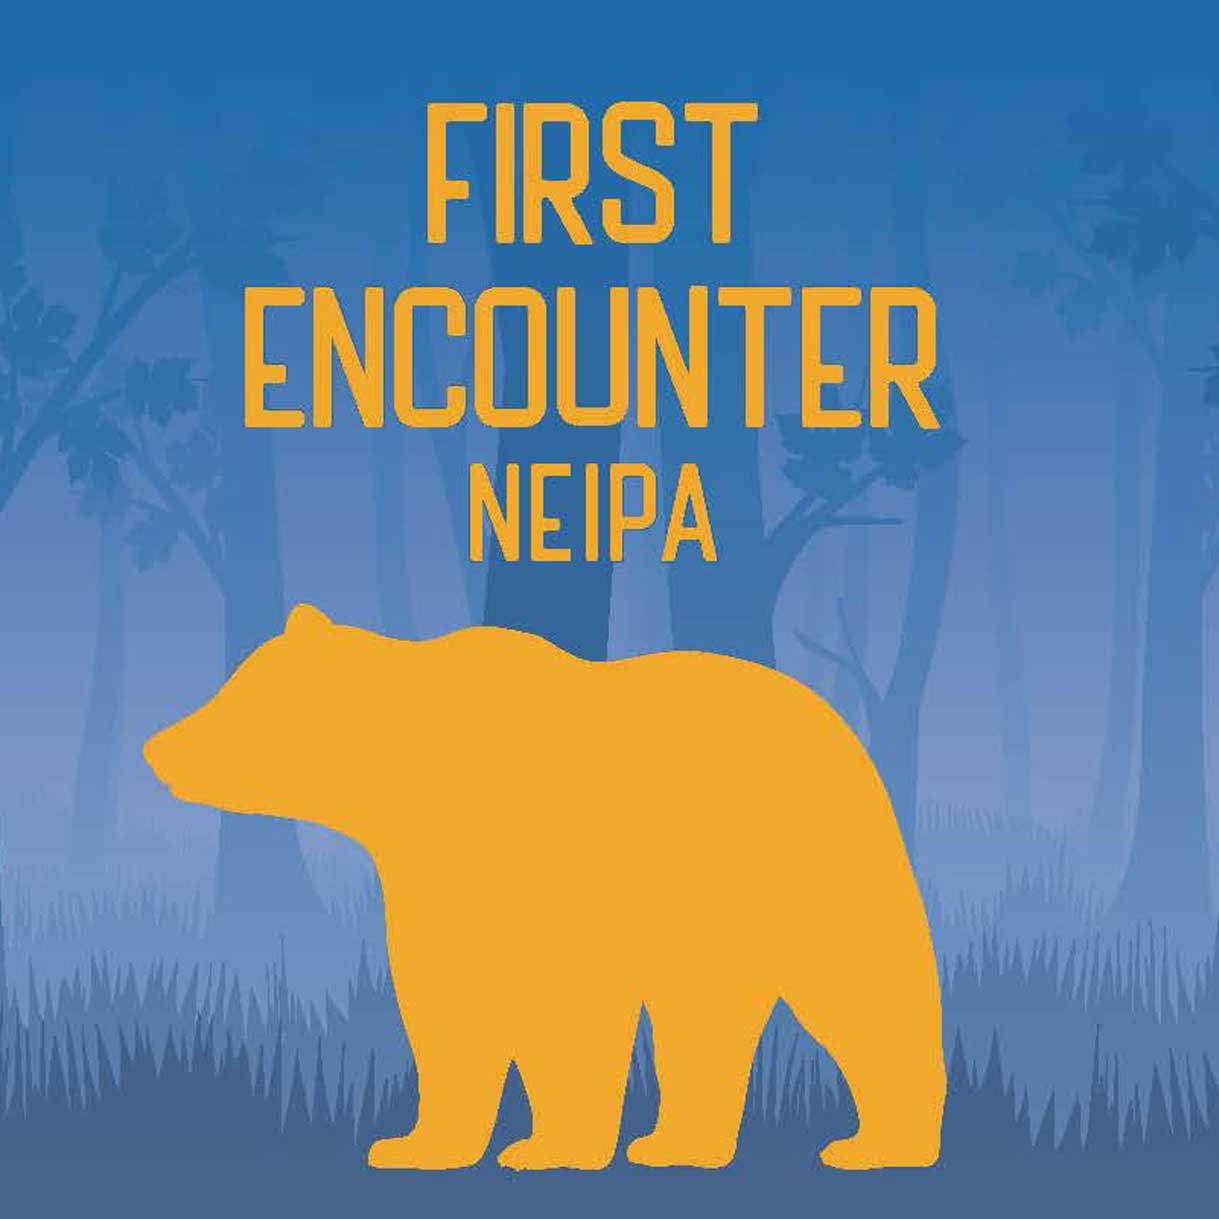 First Encounter